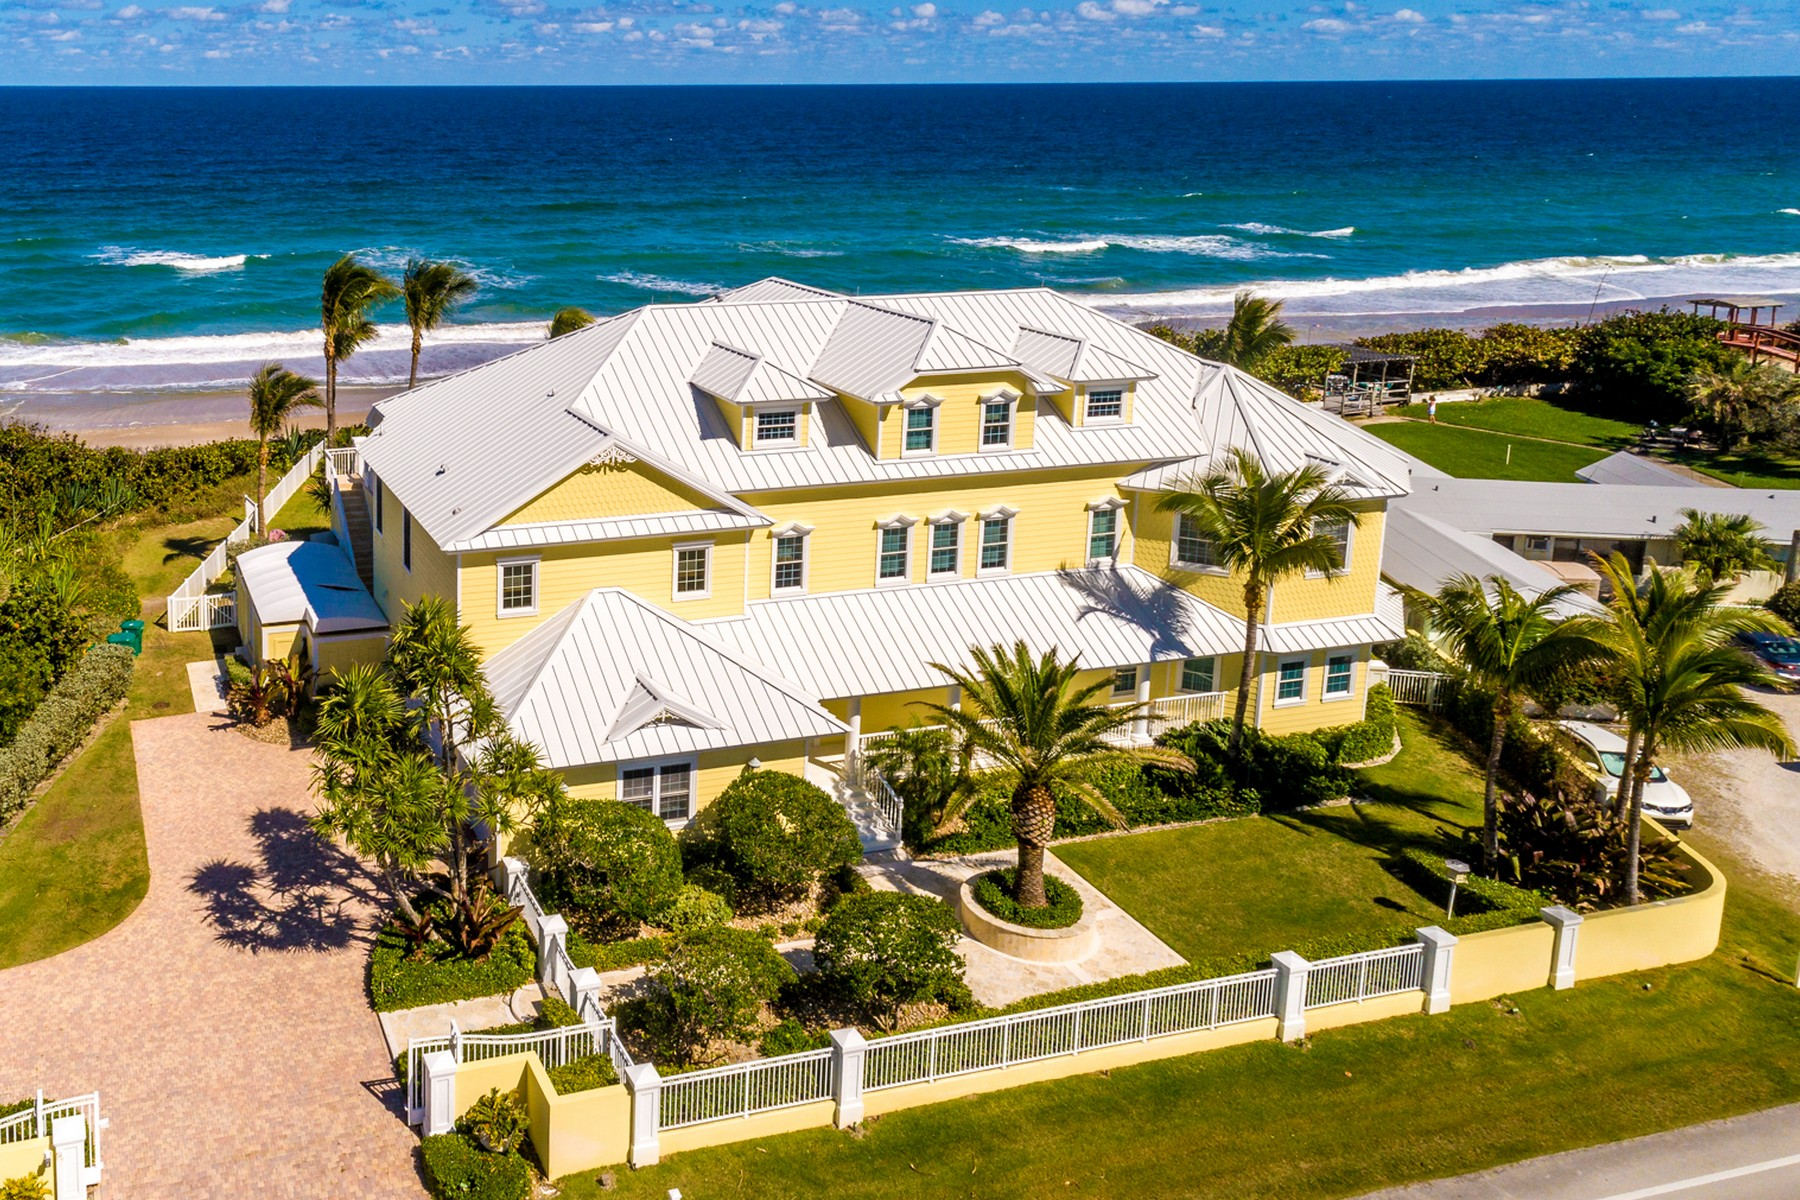 Single Family Homes for Active at Gorgeous Tropically Landscaped Home with Endless Ocean Vistas 5045 S Highway A1A Melbourne Beach, Florida 32951 United States